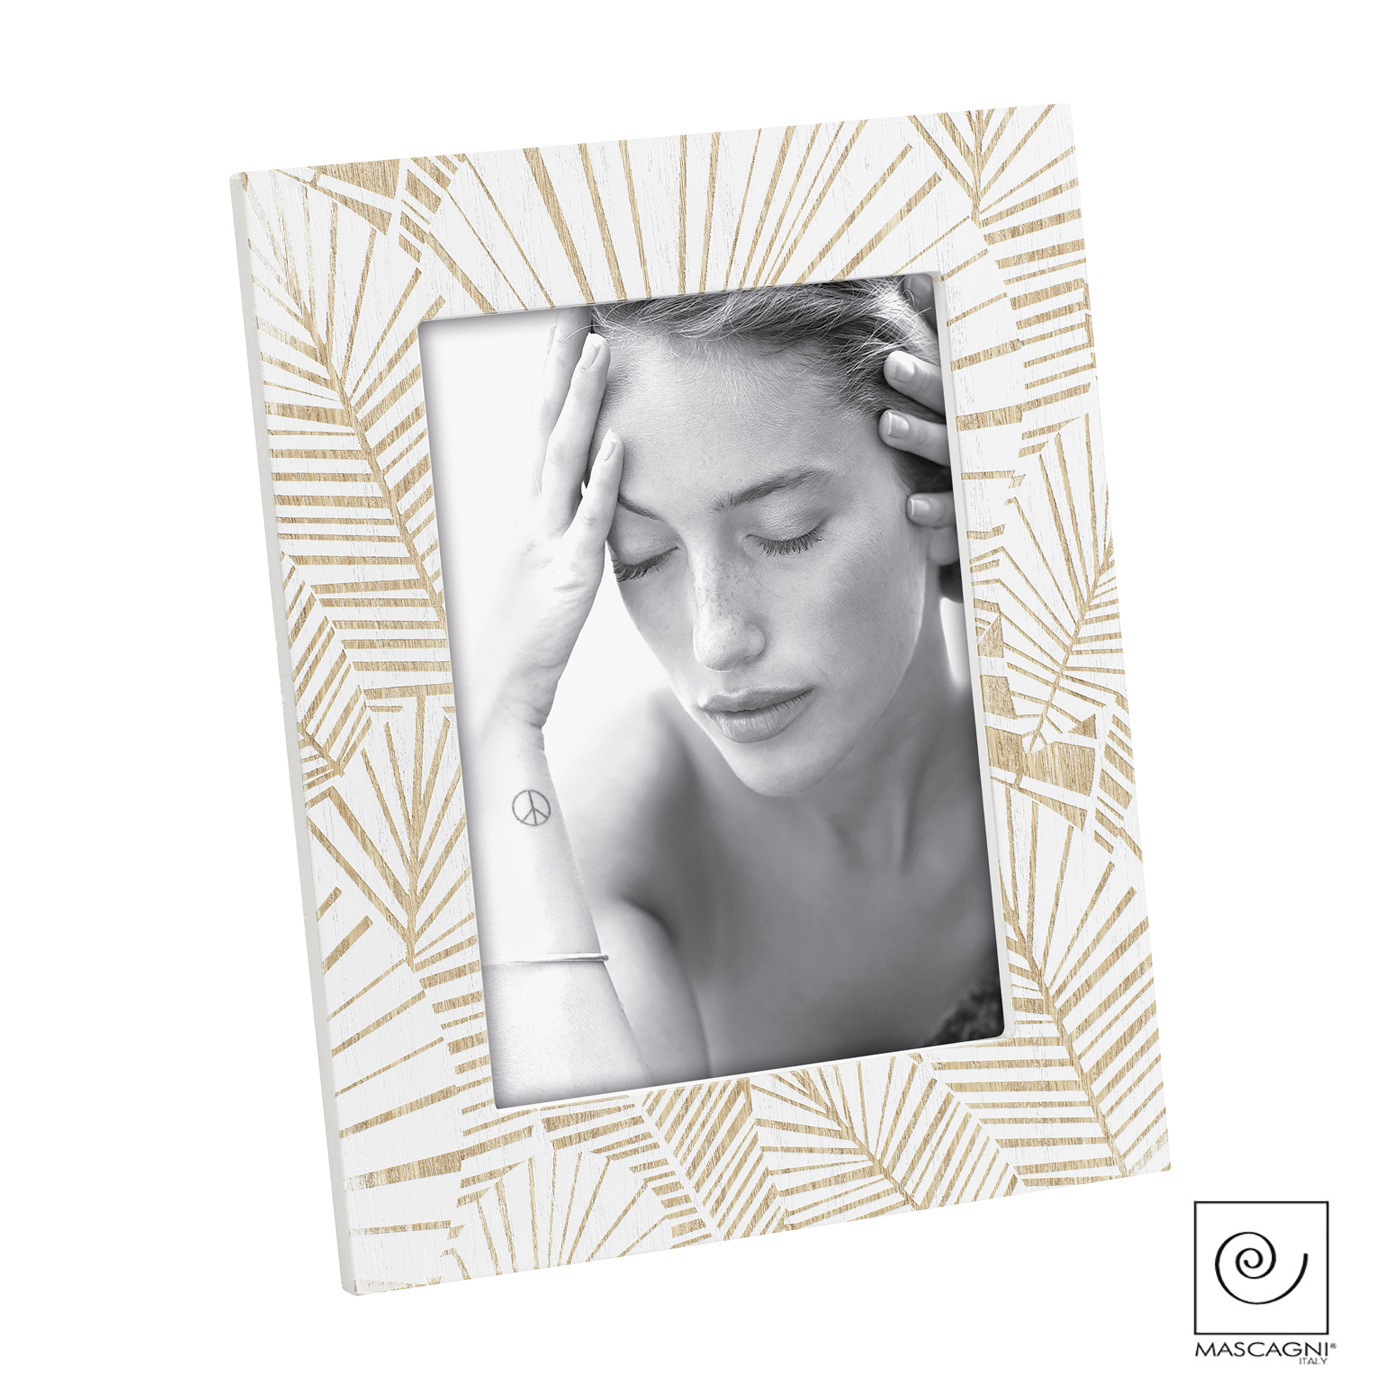 Art Mascagni A1085 PHOTO FRAME 13X18 - COL.WHITE